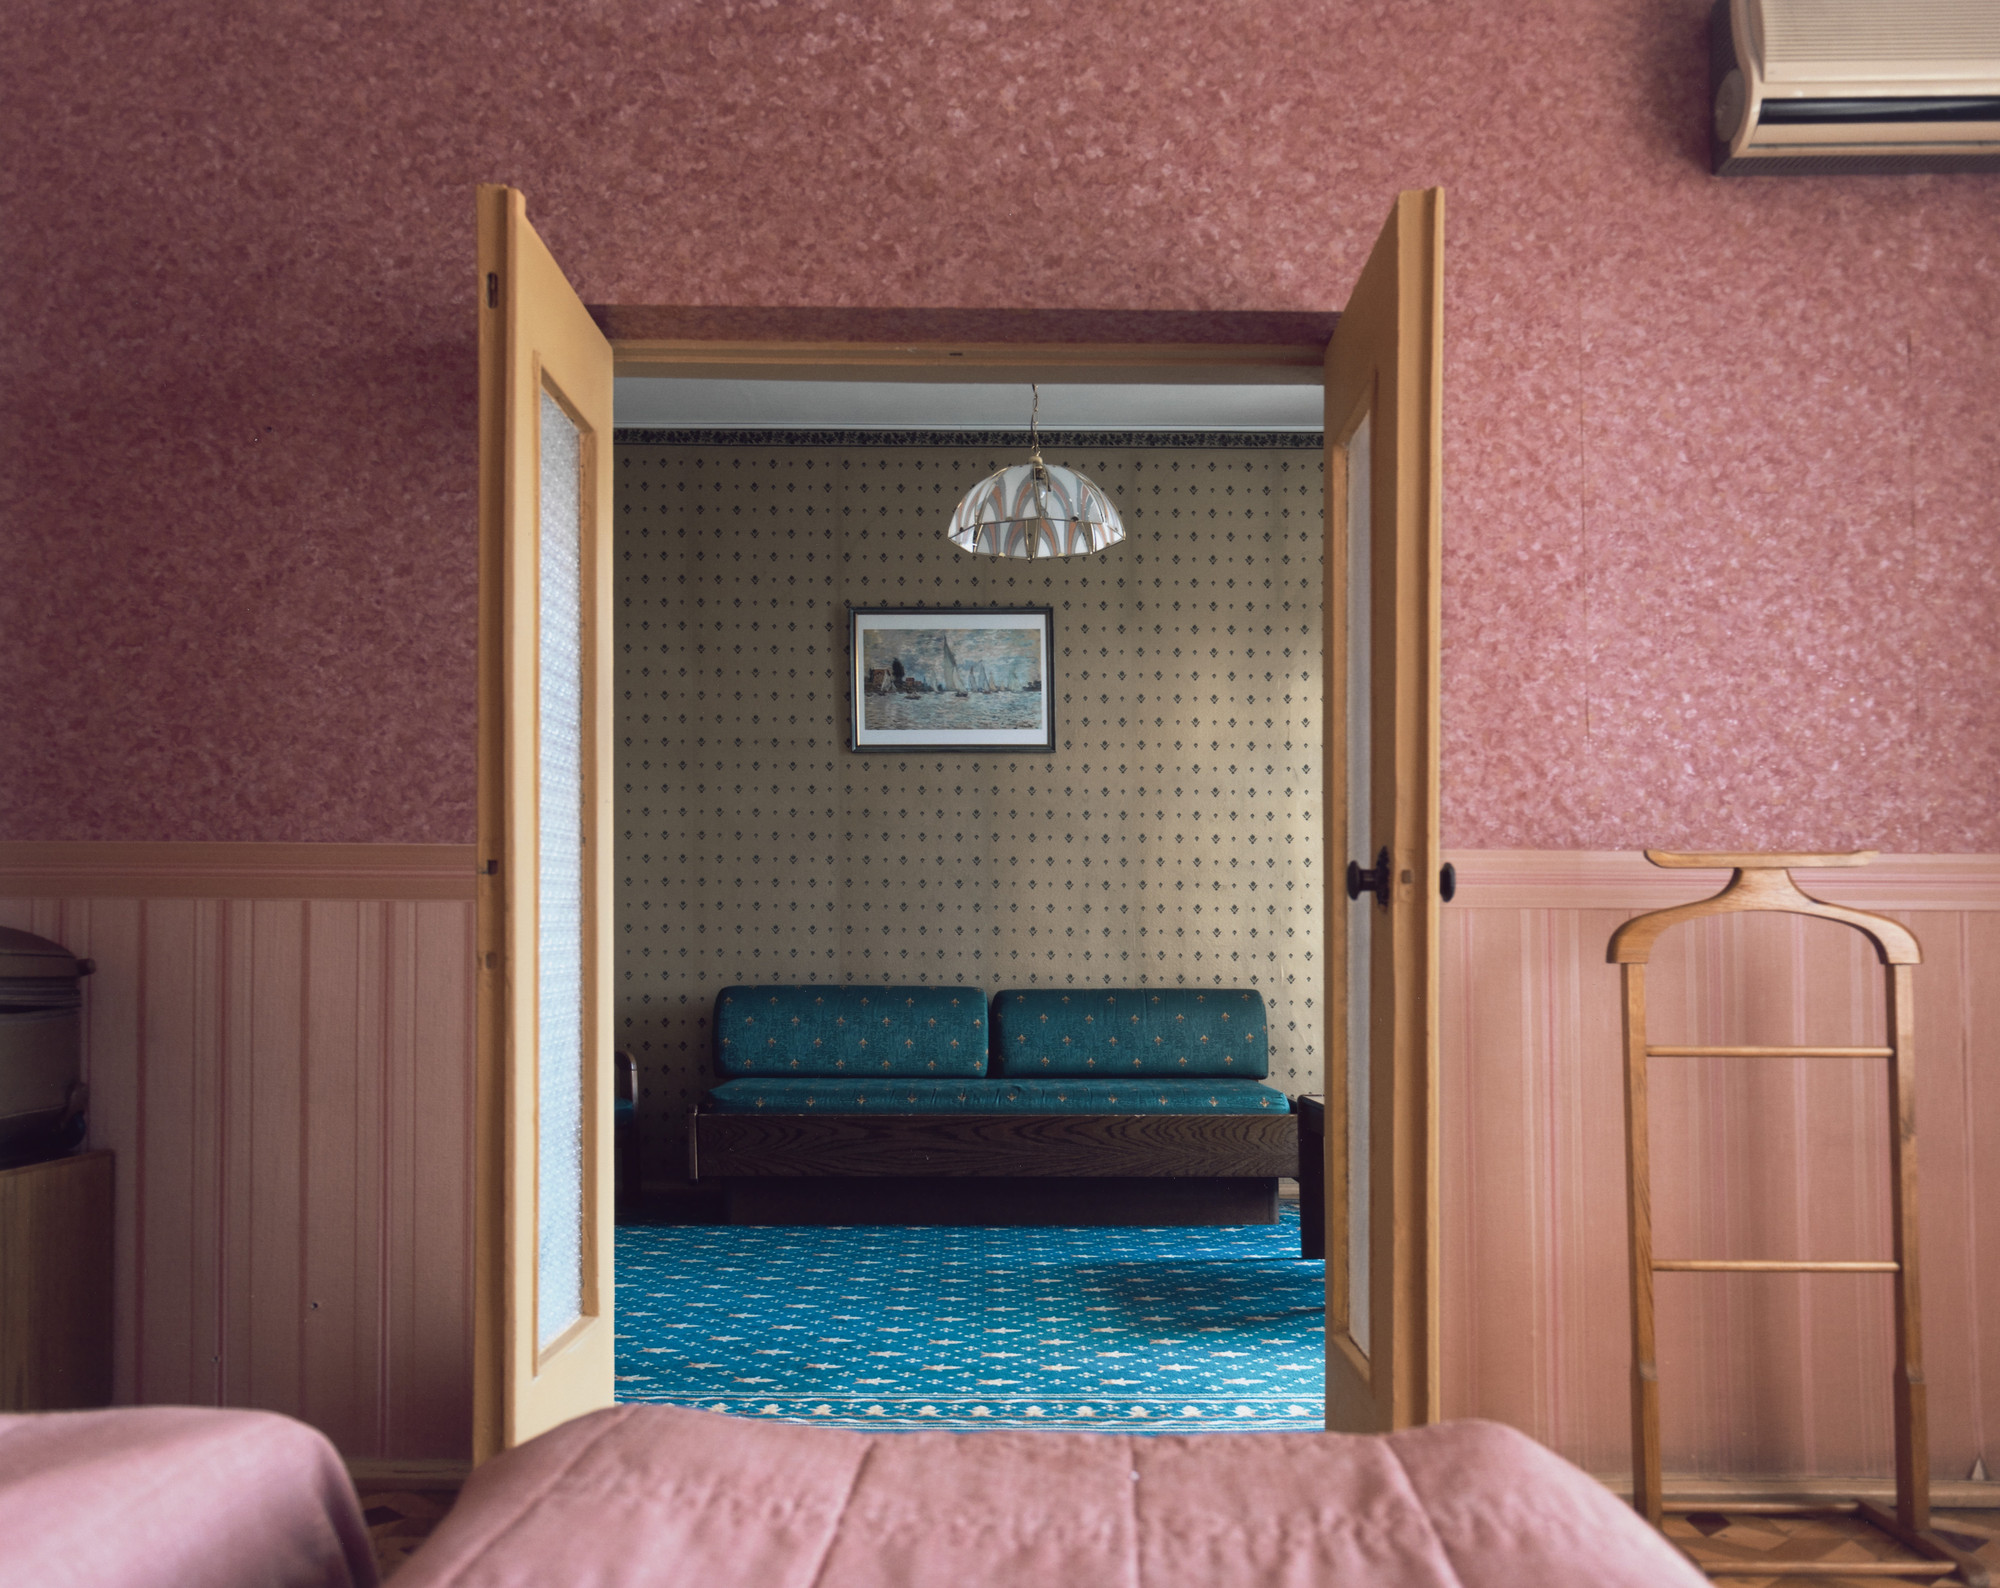 Stephen Shore. Room 509, Dnipro Hotel, Kiev, Kyivska Province, Ukraine, July 18, 2012. 2012